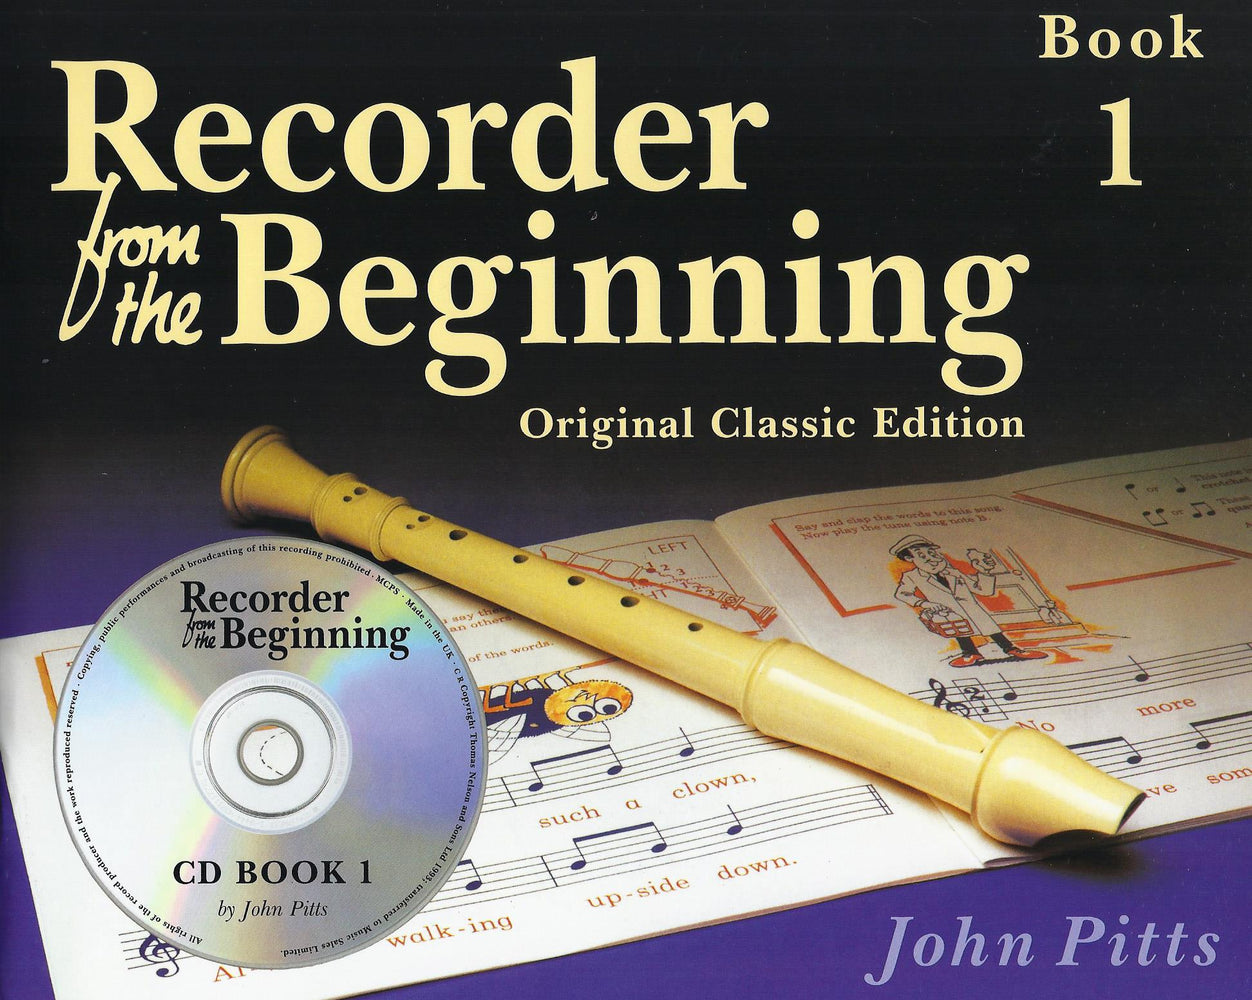 Pitts: Recorder from the Beginning Book 1 - Original Classic Edition with CD